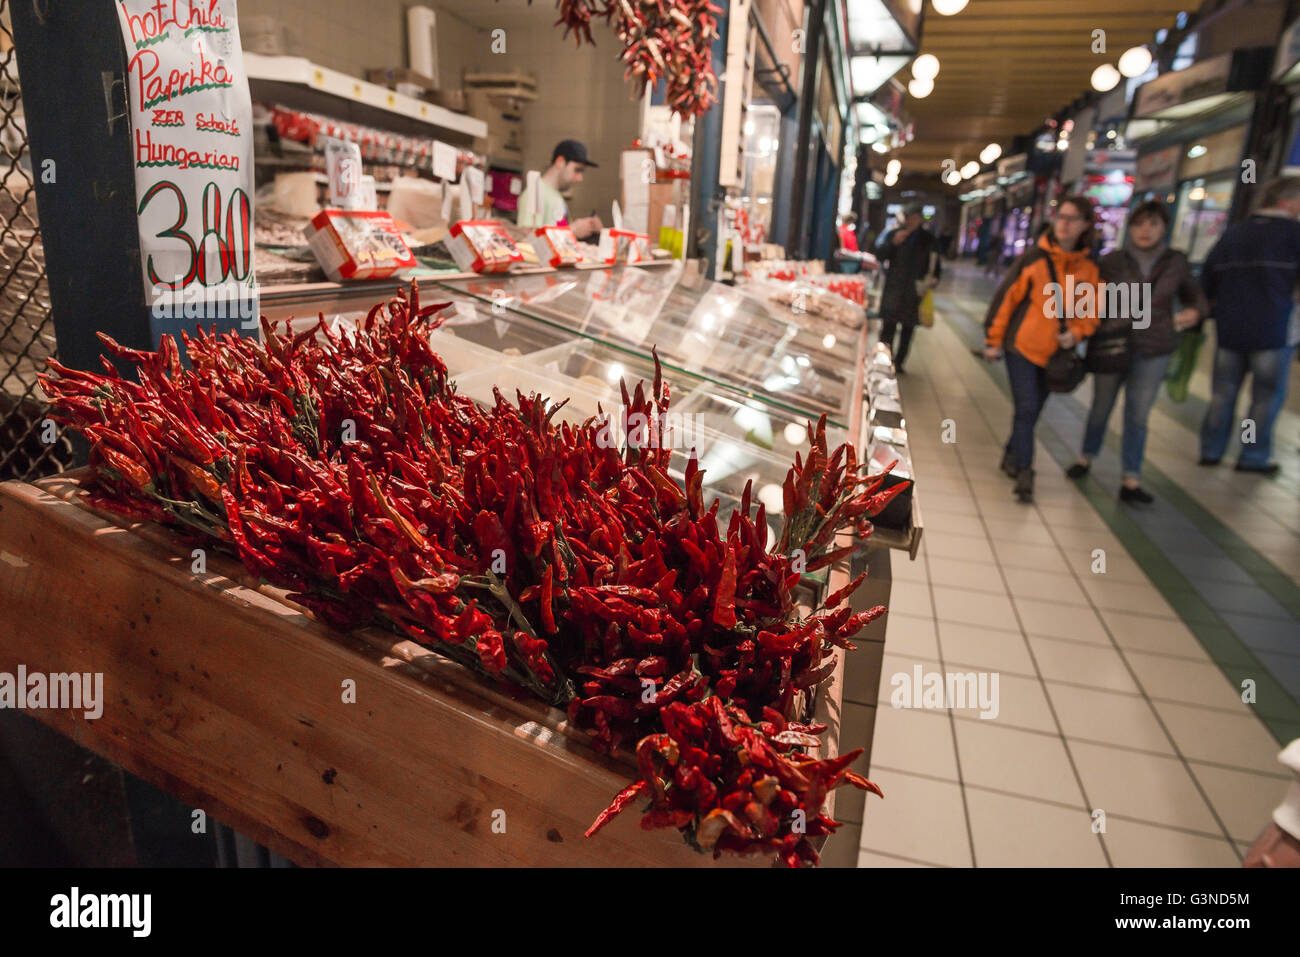 https://c8.alamy.com/comp/G3ND5M/hungary-food-market-chili-peppers-on-sale-in-the-great-market-hall-G3ND5M.jpg